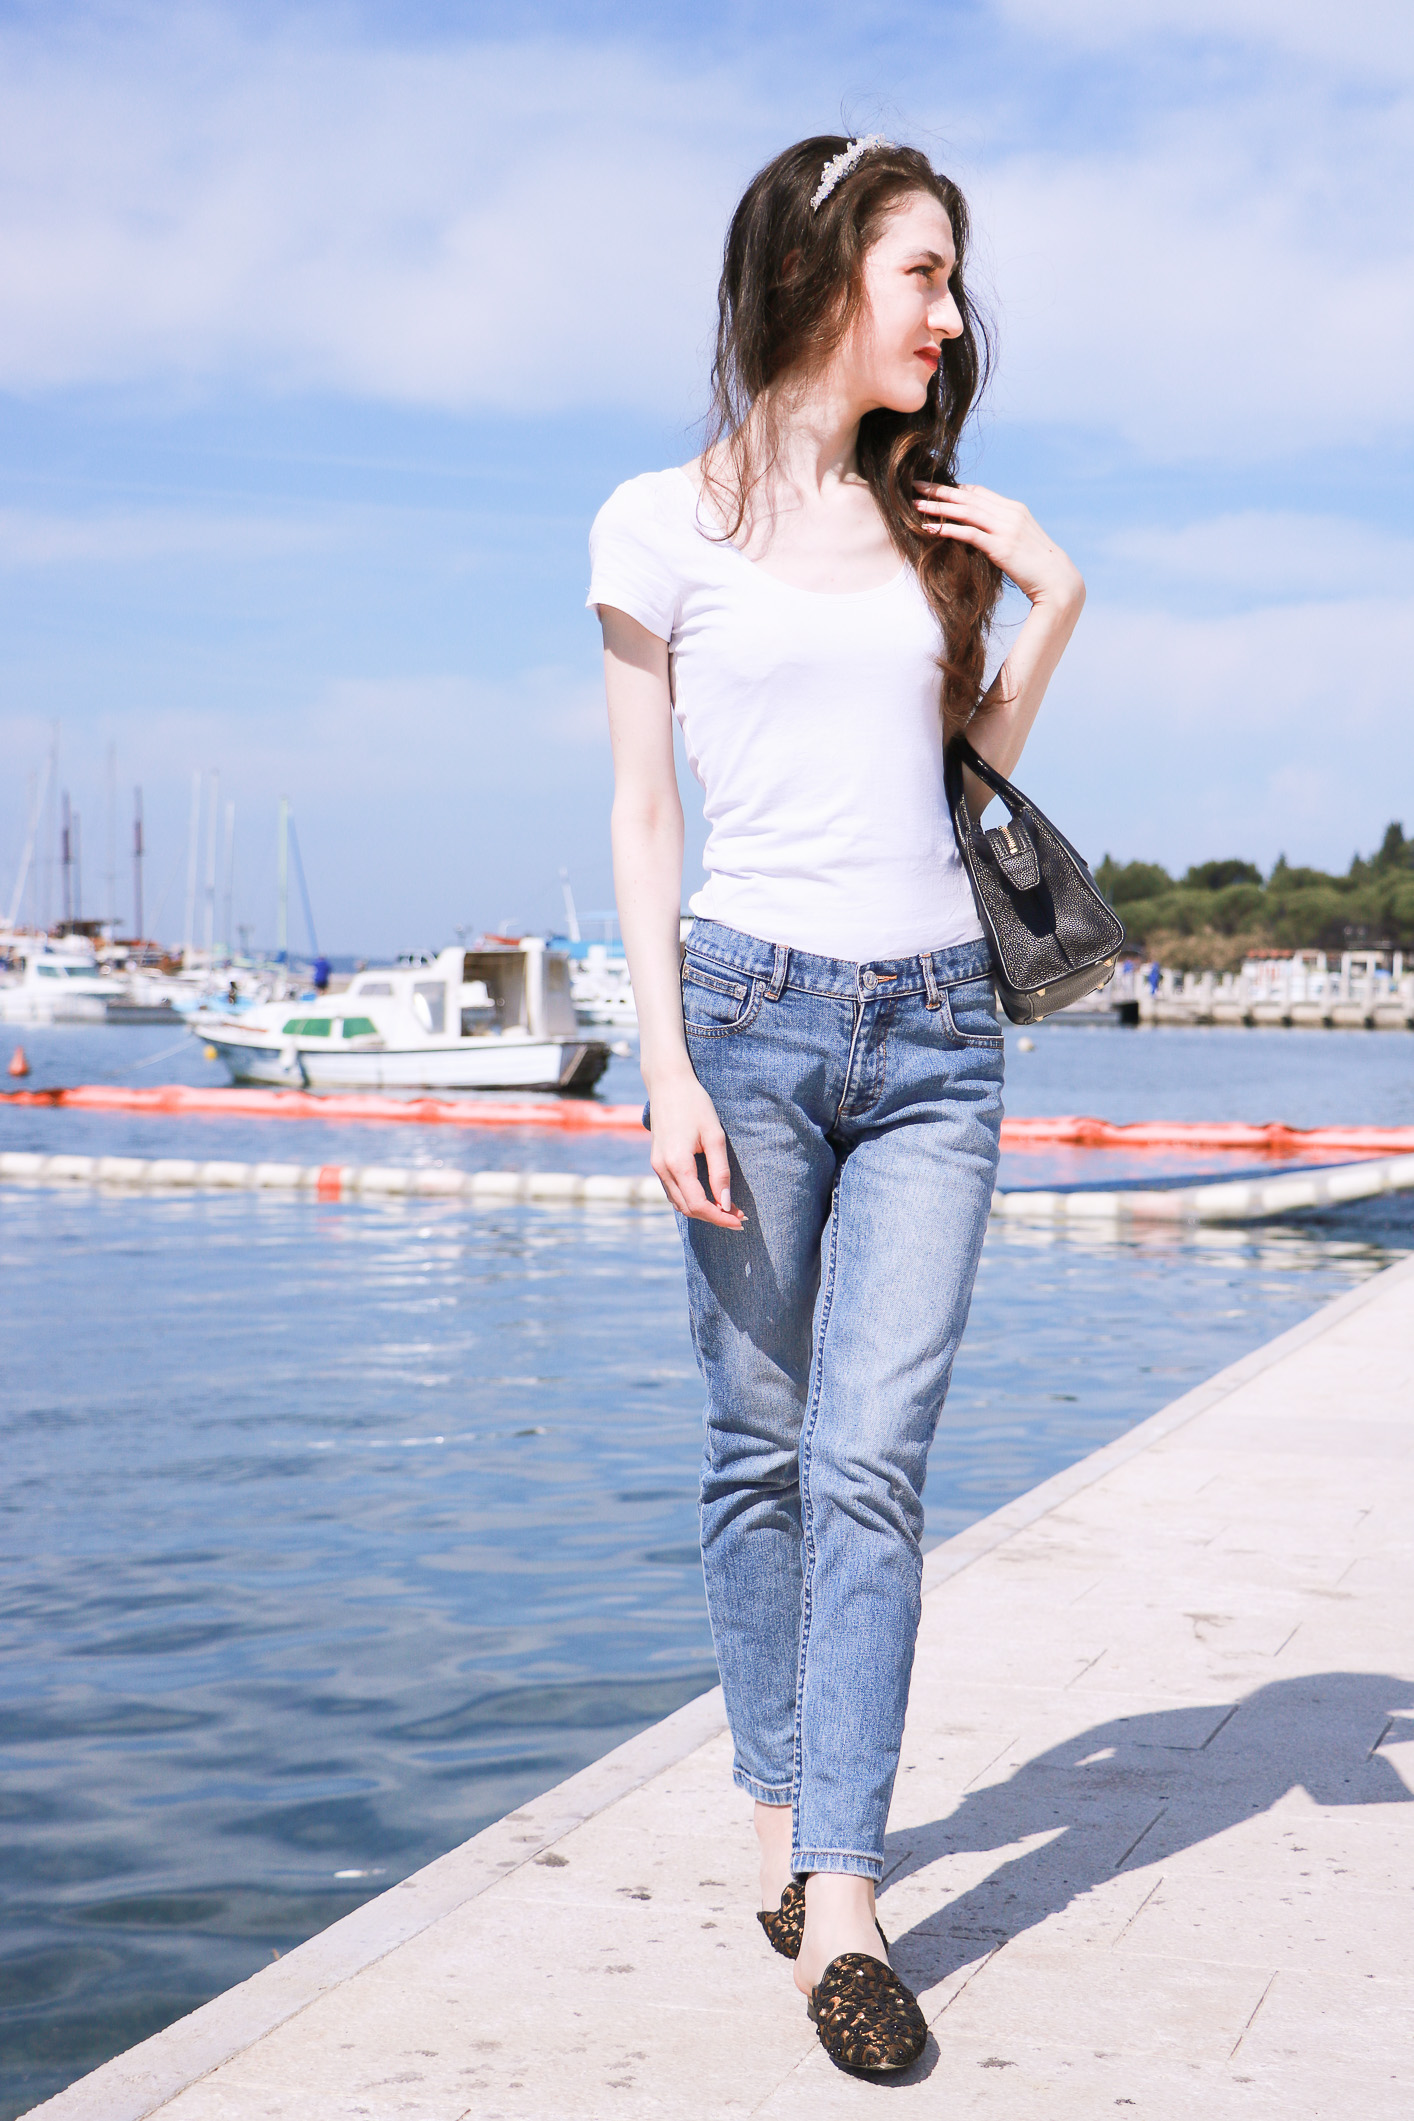 Fashion blogger Veronika Lipar of Brunette From Wall Street sharing how to elevate a white tee shirt and light blue mom jeans while by the Adriatic sea